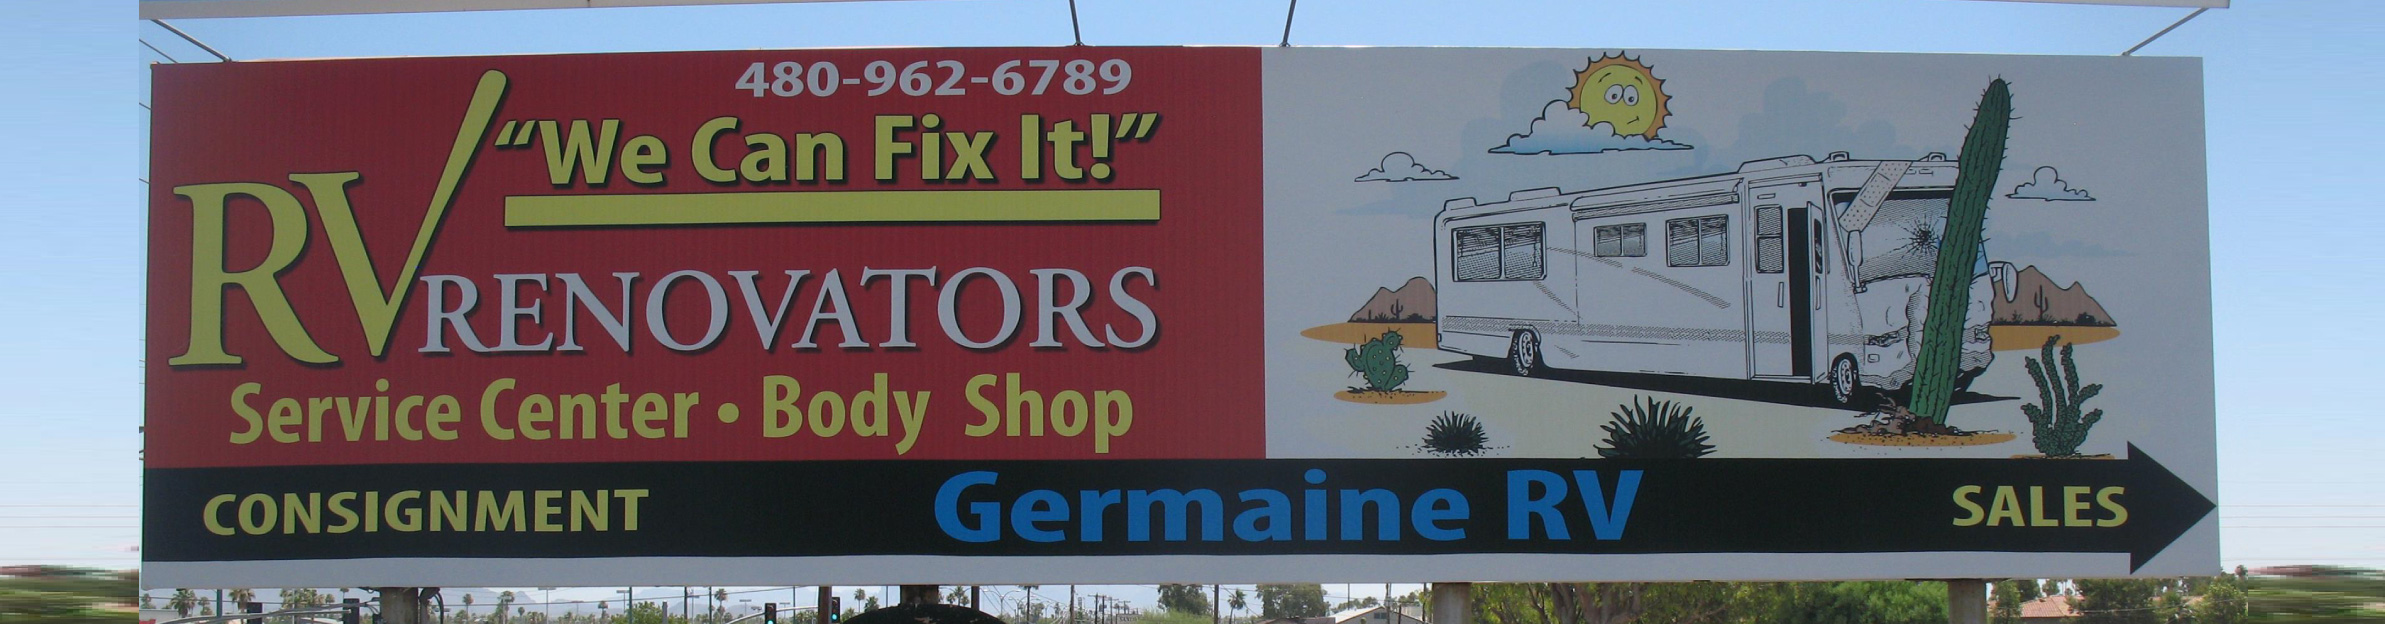 RV Renovators Billboard